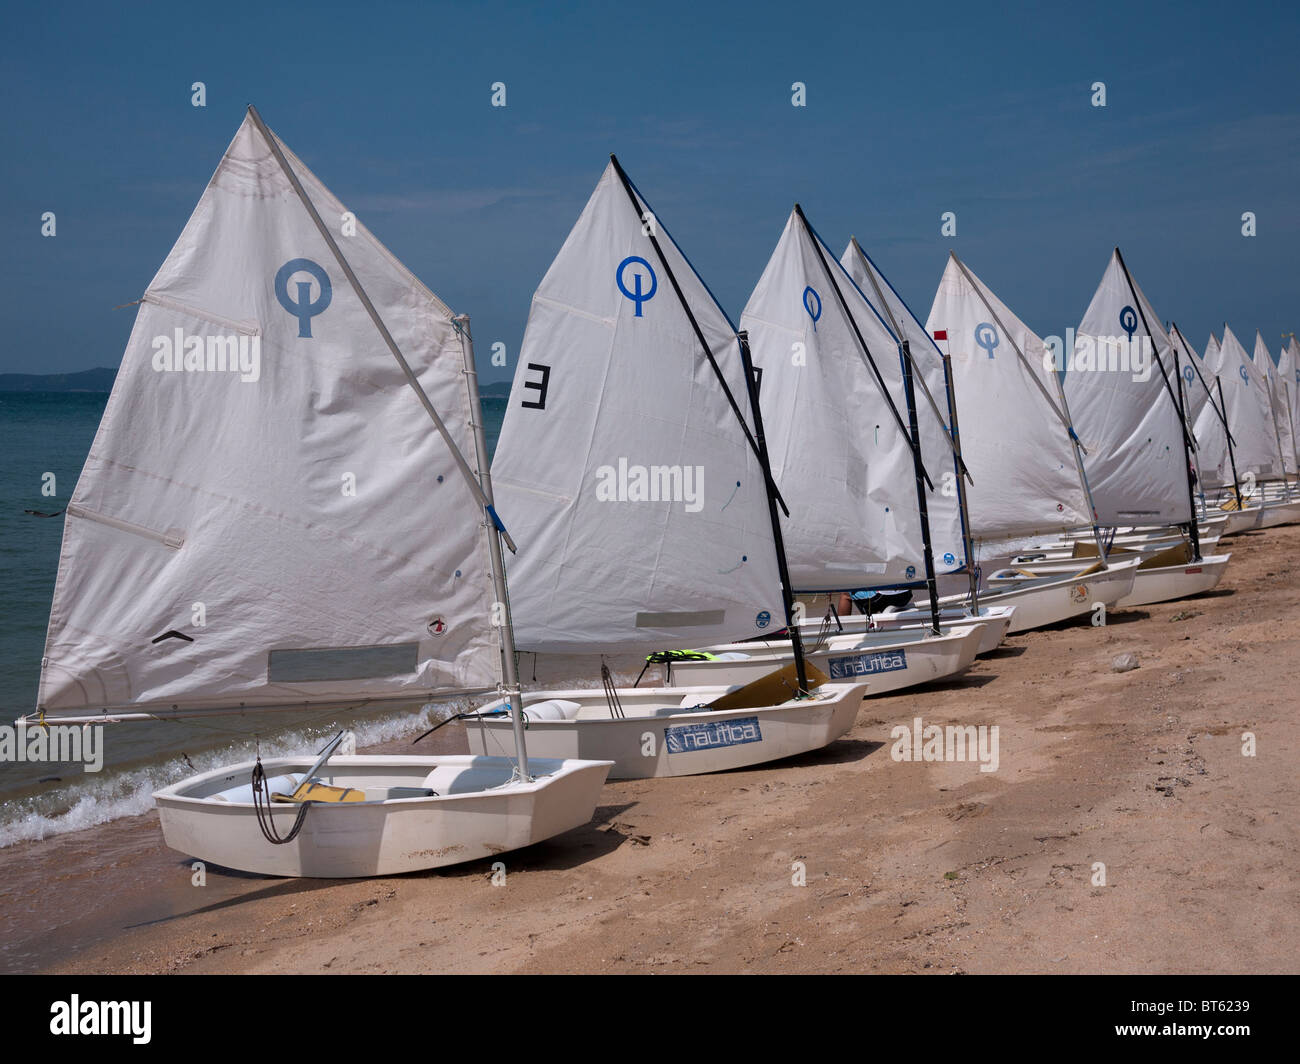 A fleet of Optimist dinghies - Stock Image